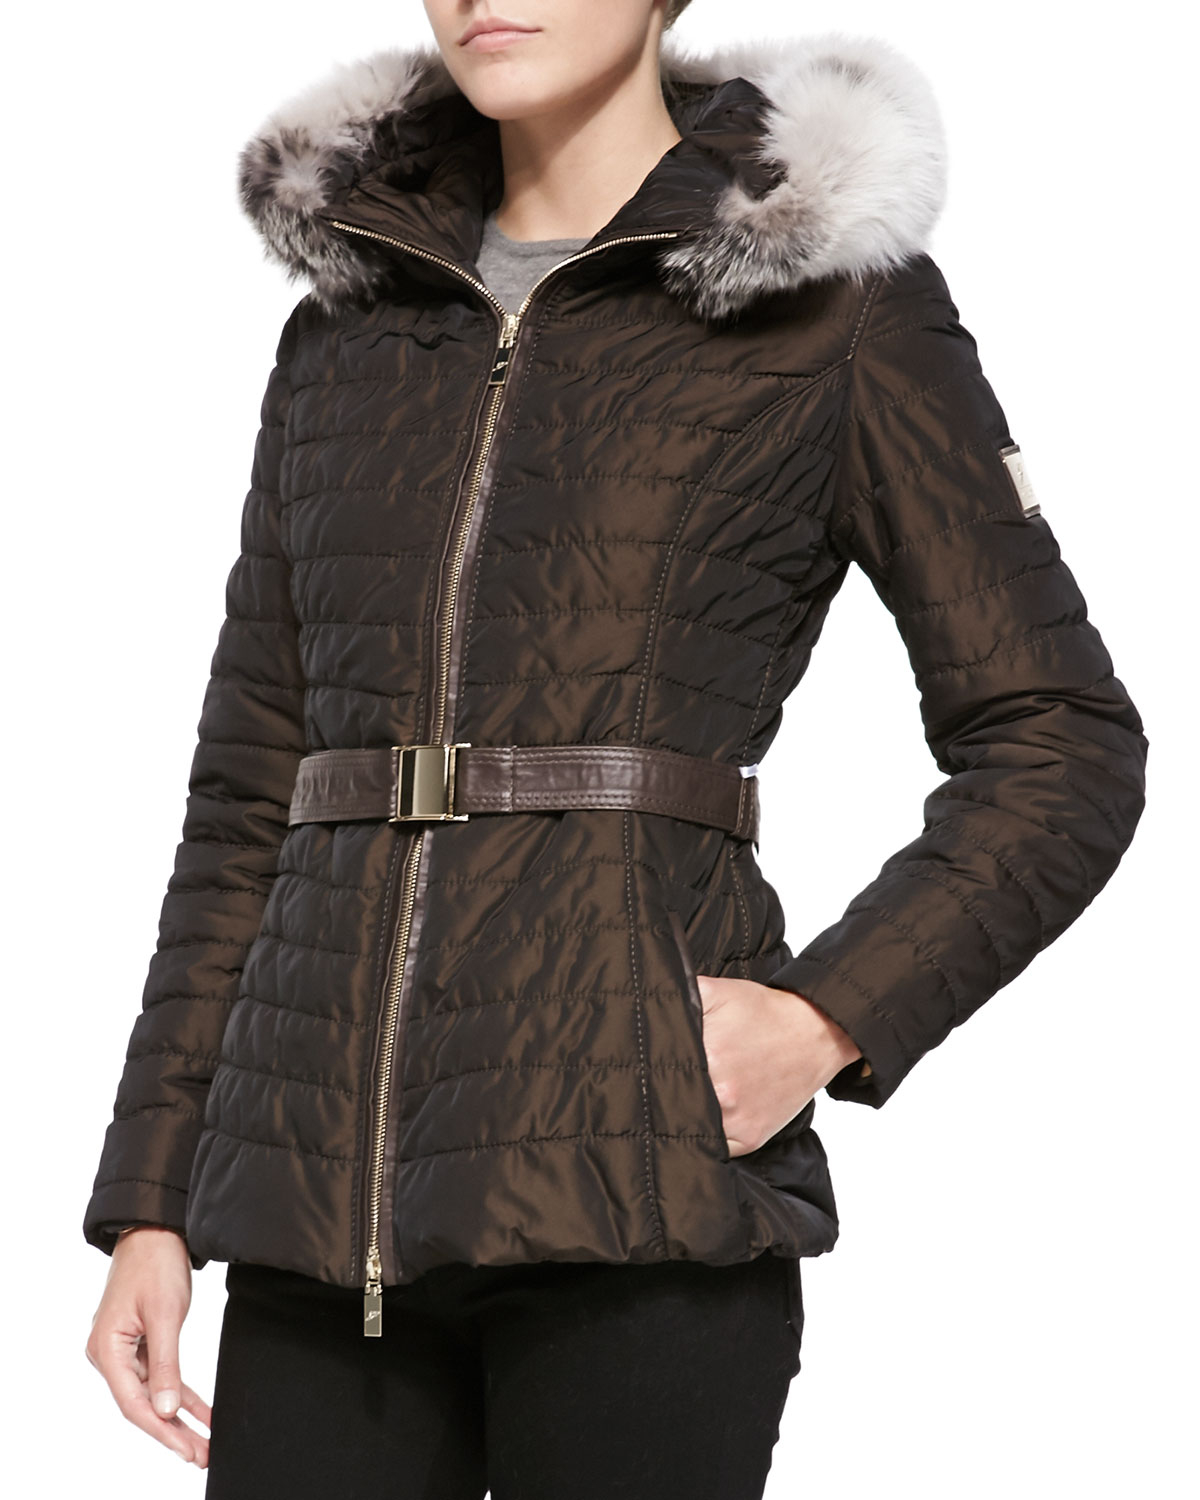 Product Features / Down Hooded Winter ski puffer learn-islam.gq heat technology.